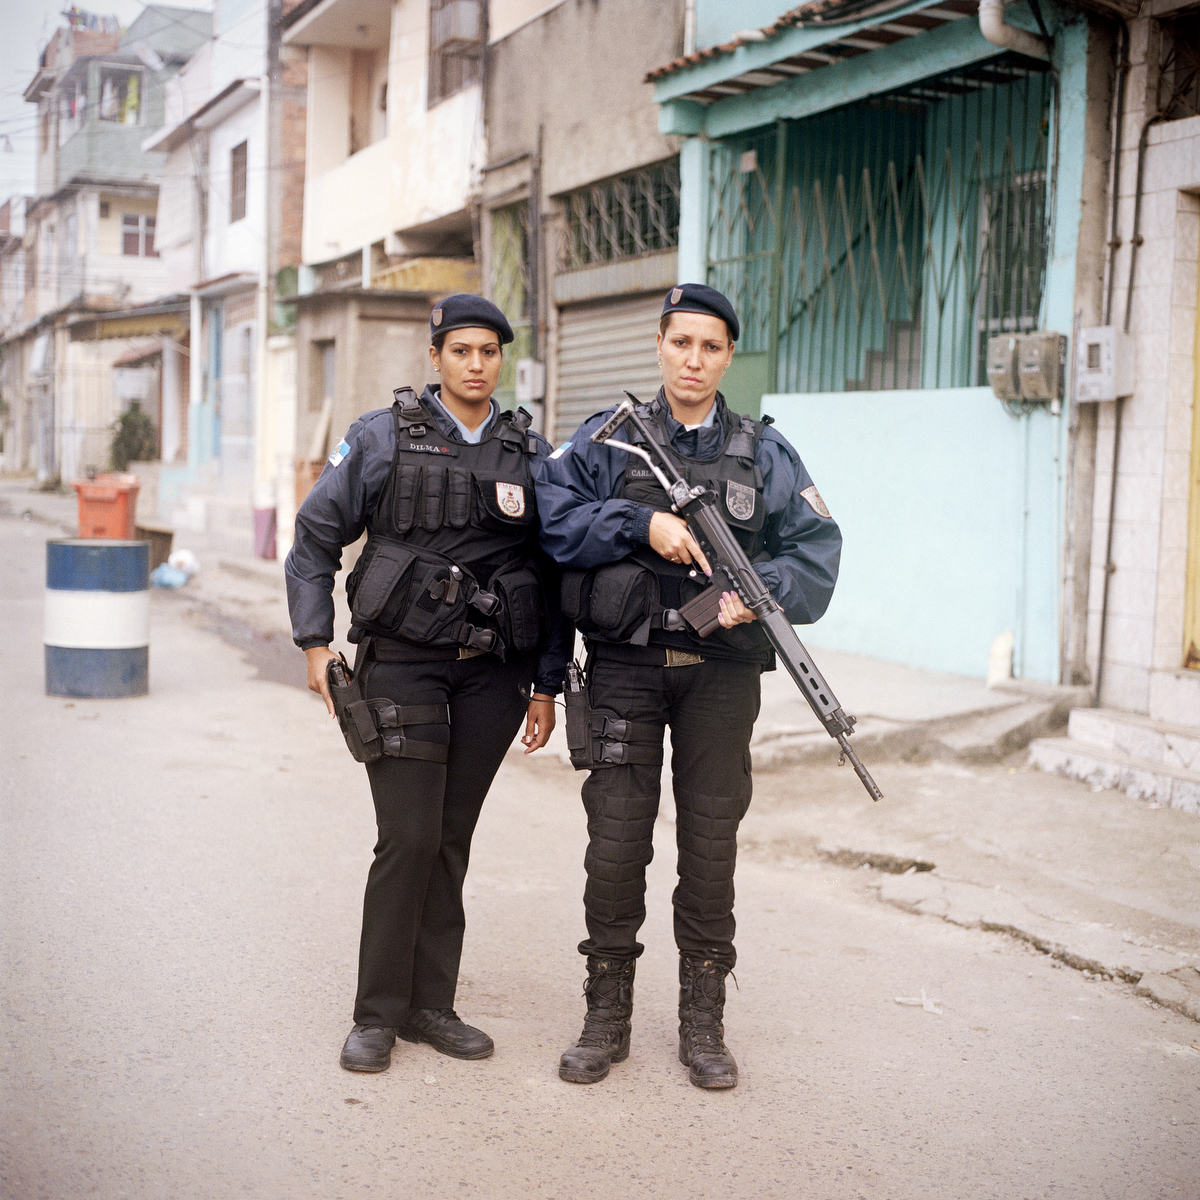 Patrol Officers Dilma Carvalho, 32, left, and Carla Bonn, 33, right, are with the Rapid Response Team of the Pacifying Police Unit (UPP), in Complexo do Caju, Rio de Janeiro, Brazil.